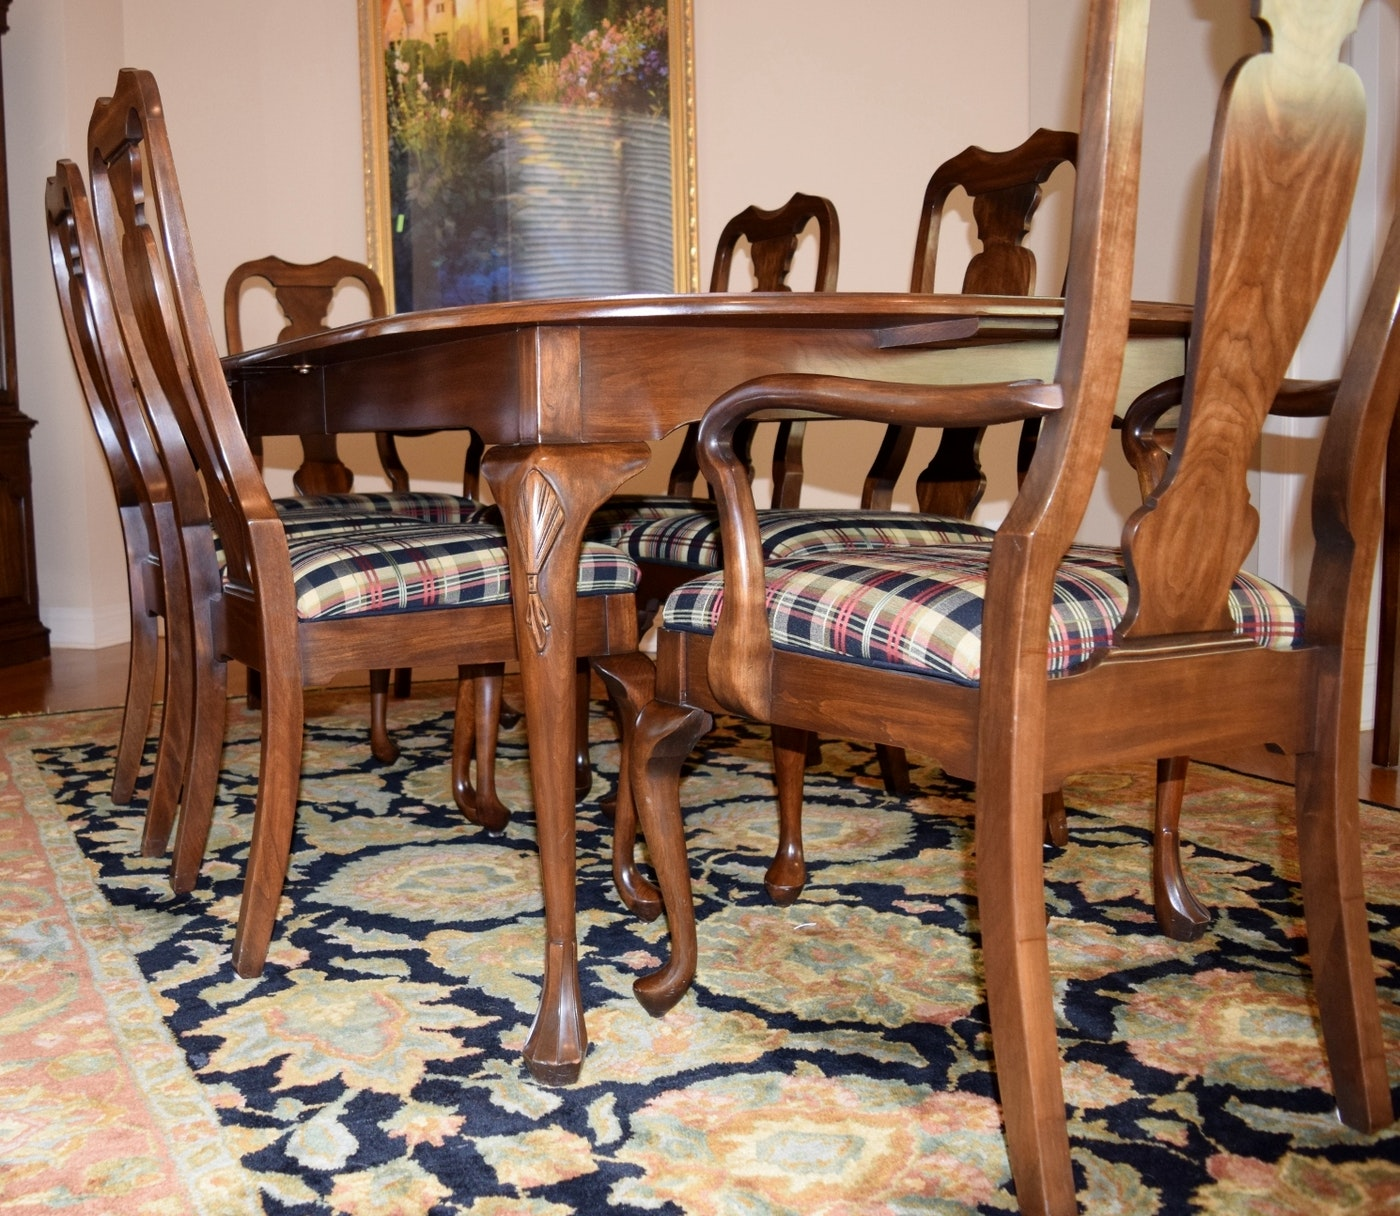 Queen Anne Dining Room Table: Harden Furniture Co. Queen Anne Style Dining Room Table